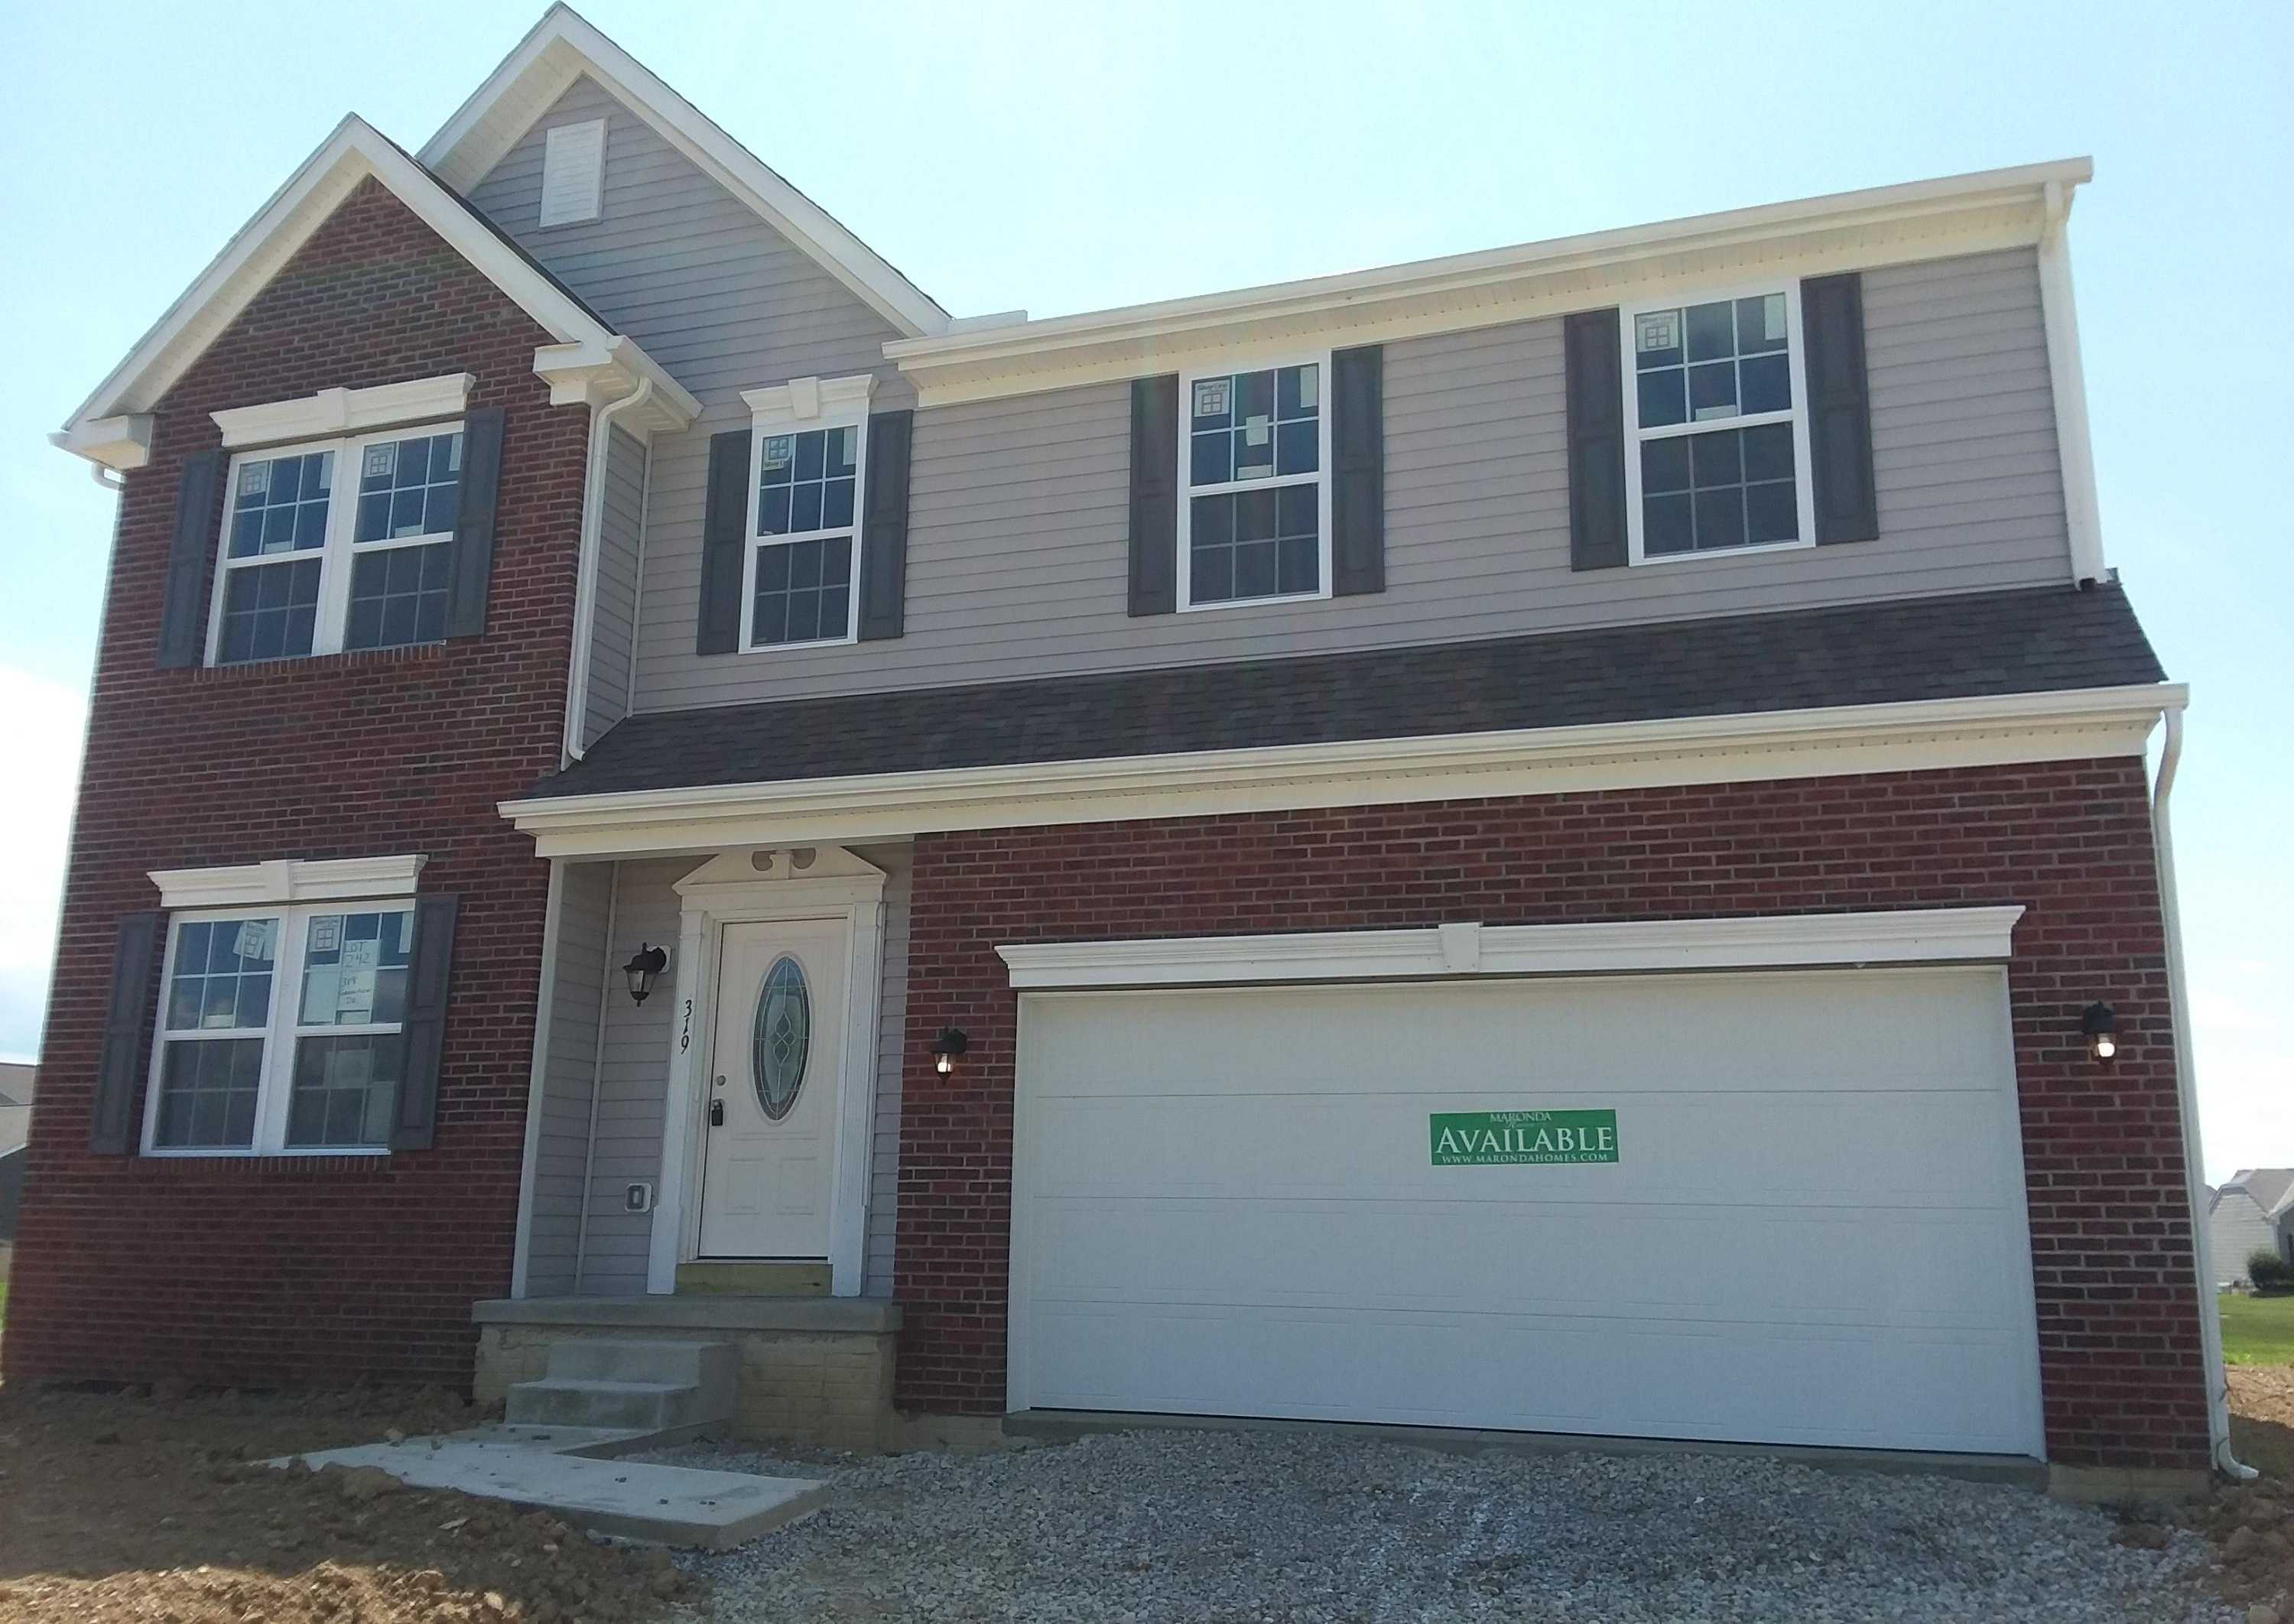 319 Green Acres Drive Unit 242 Johnstown,OH 43031 219025845